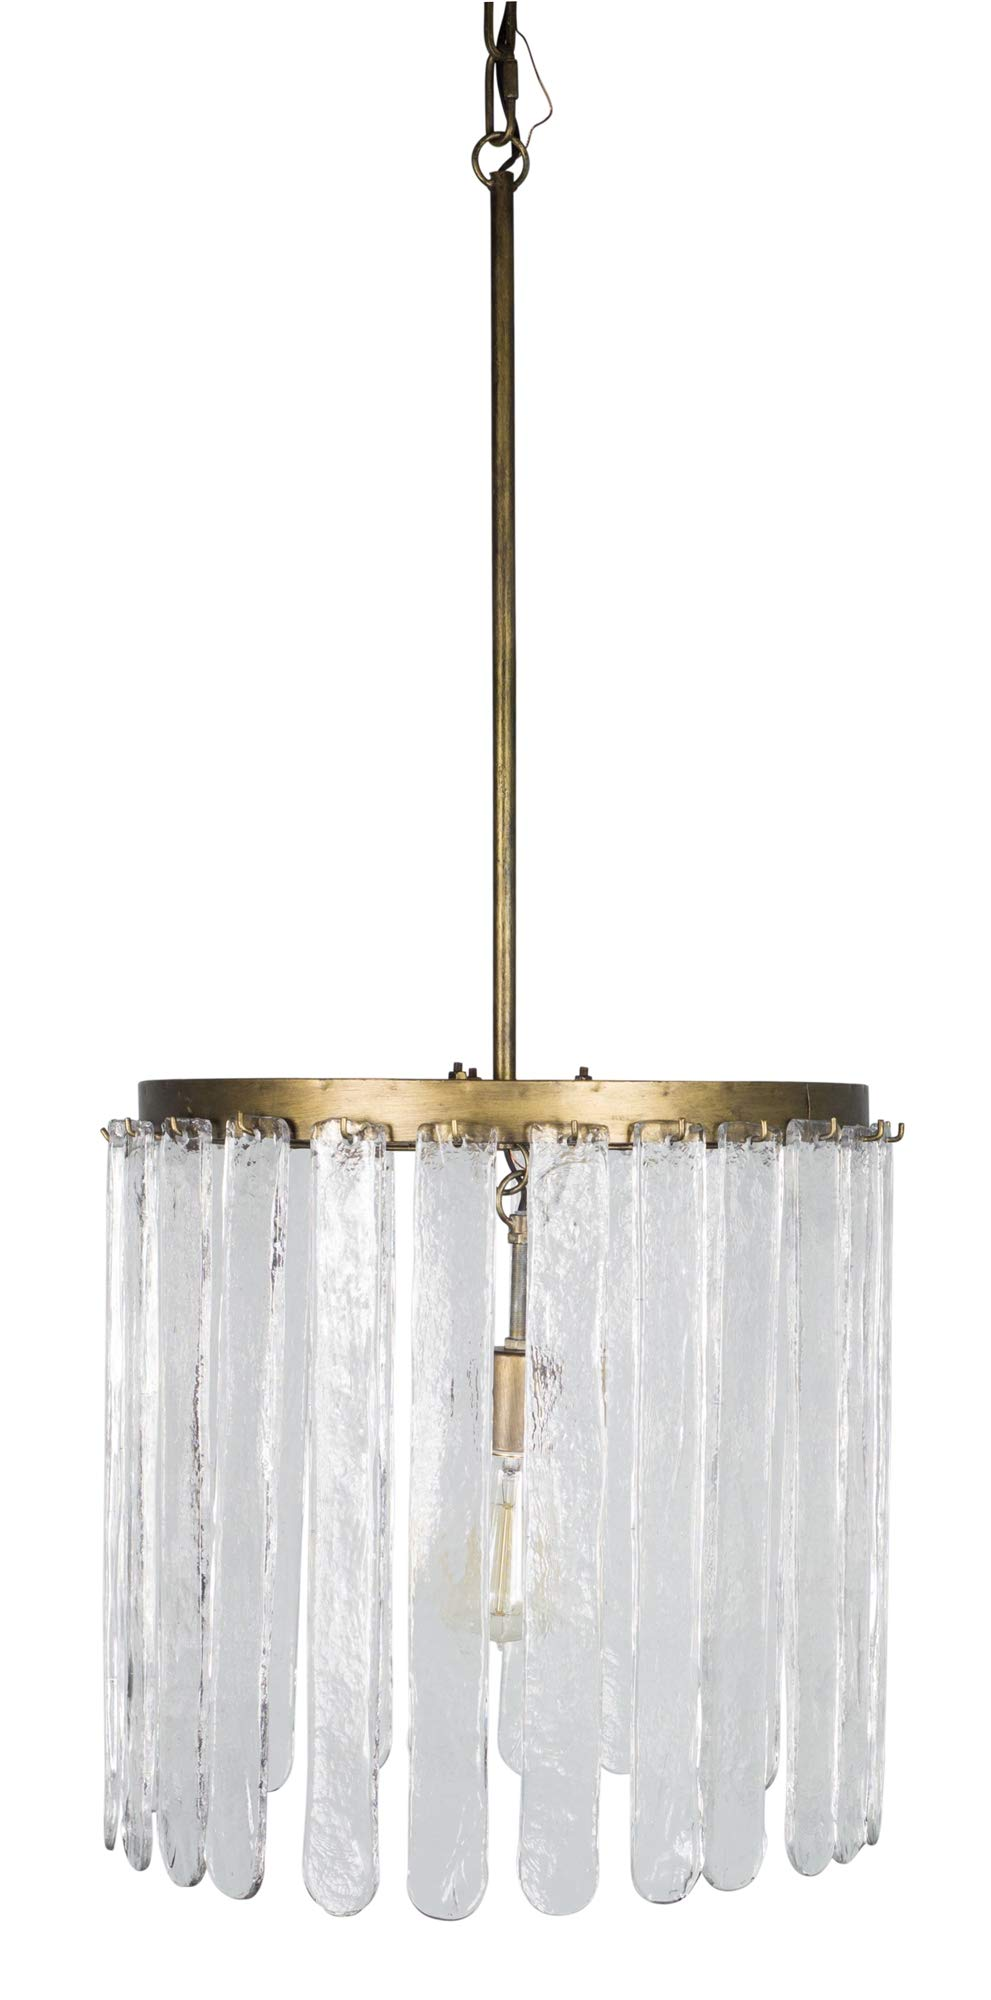 Melrose International Hanging Lamp 17.25'' x 37''H Iron/Glass (Max 40W)